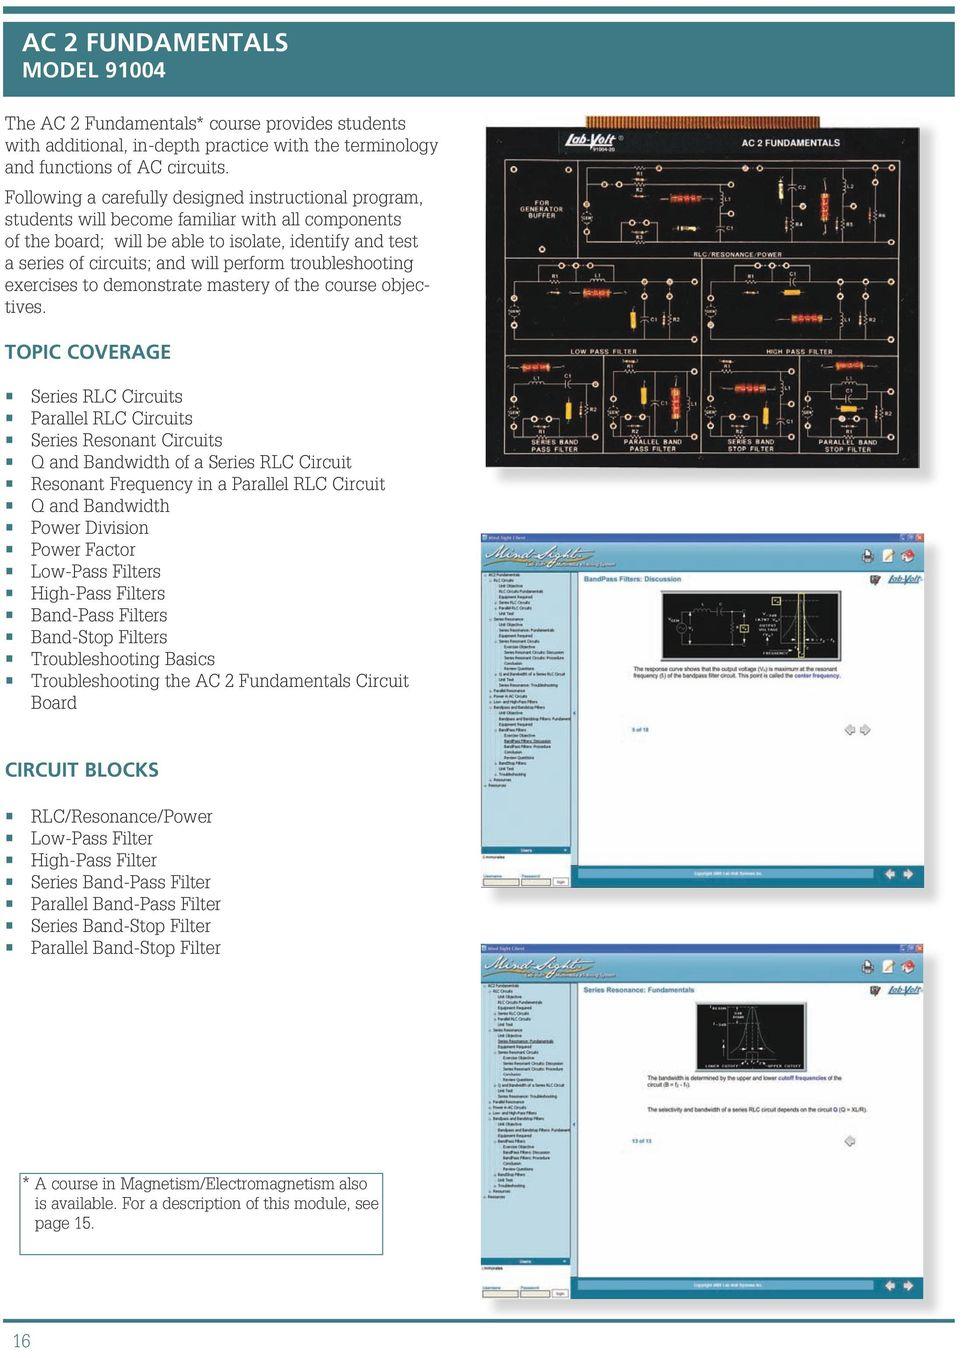 Electronics Training Systems Facet Pdf How To Troubleshoot This Bandstop Filter Circuit Electrical Troubleshooting Exercises Demonstrate Mastery Of The Course Objectives